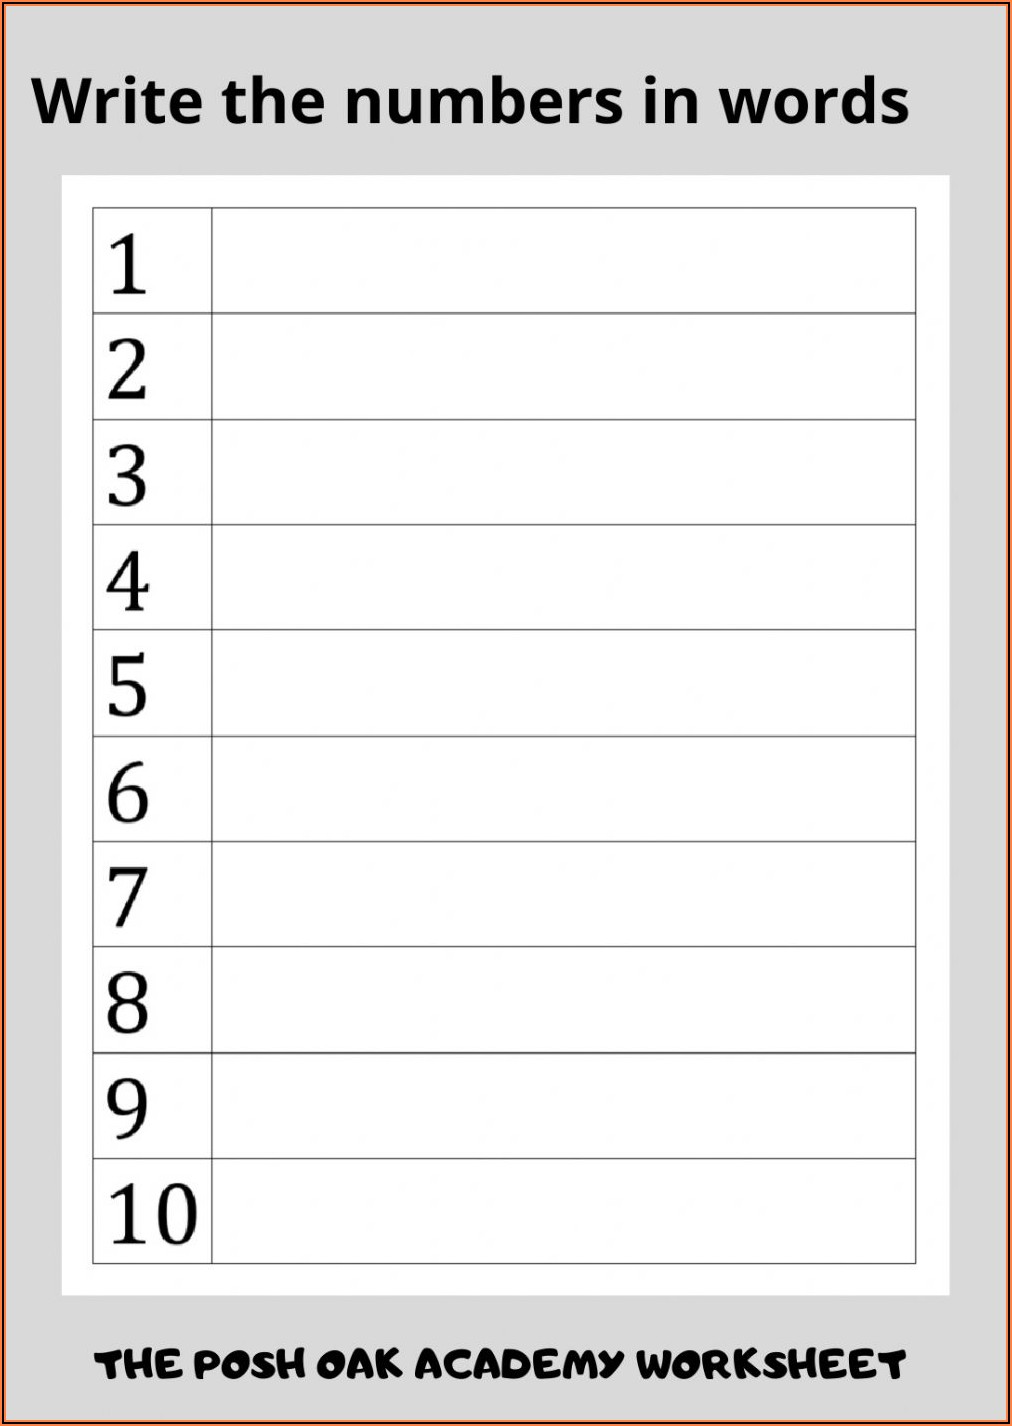 Matching Numbers To Words Worksheet 1 10